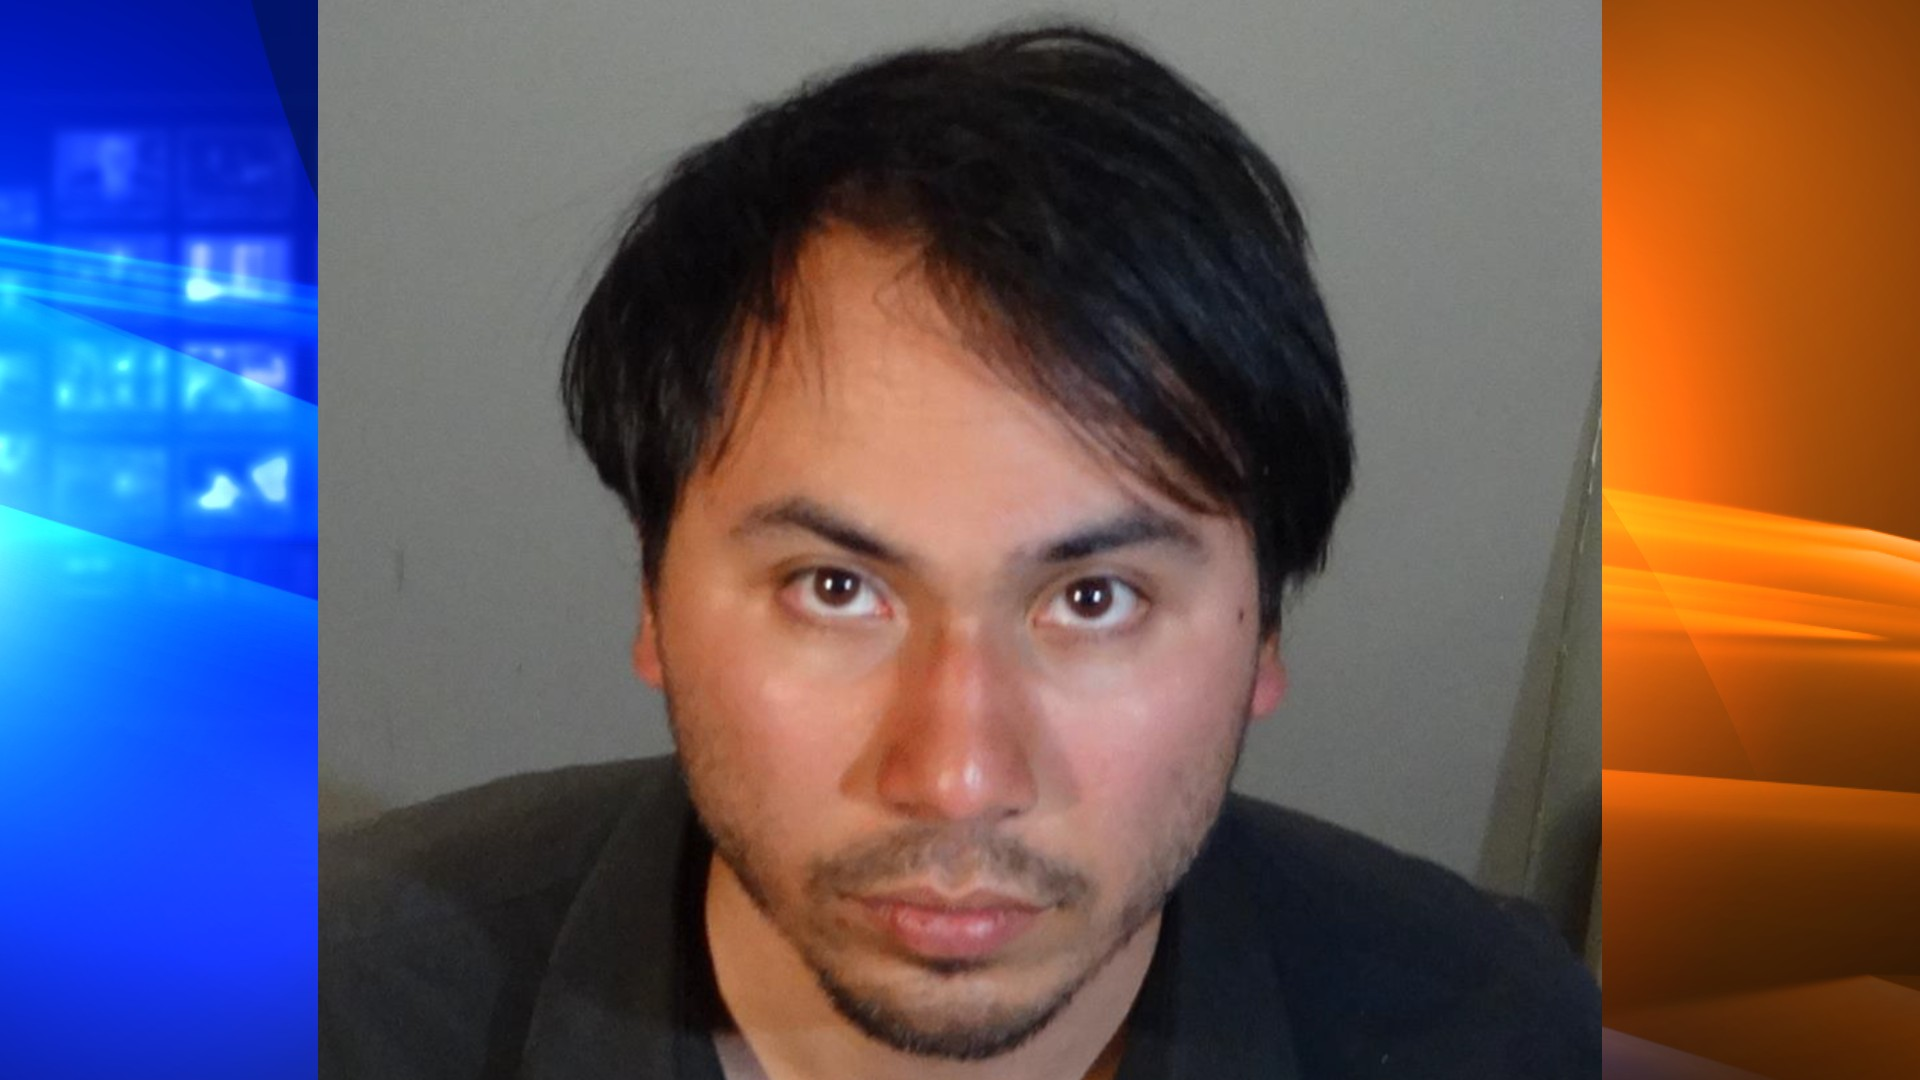 Adrian Gudino is seen in a booking photo released on May 13, 2021, by the Redondo Beach Police Department.